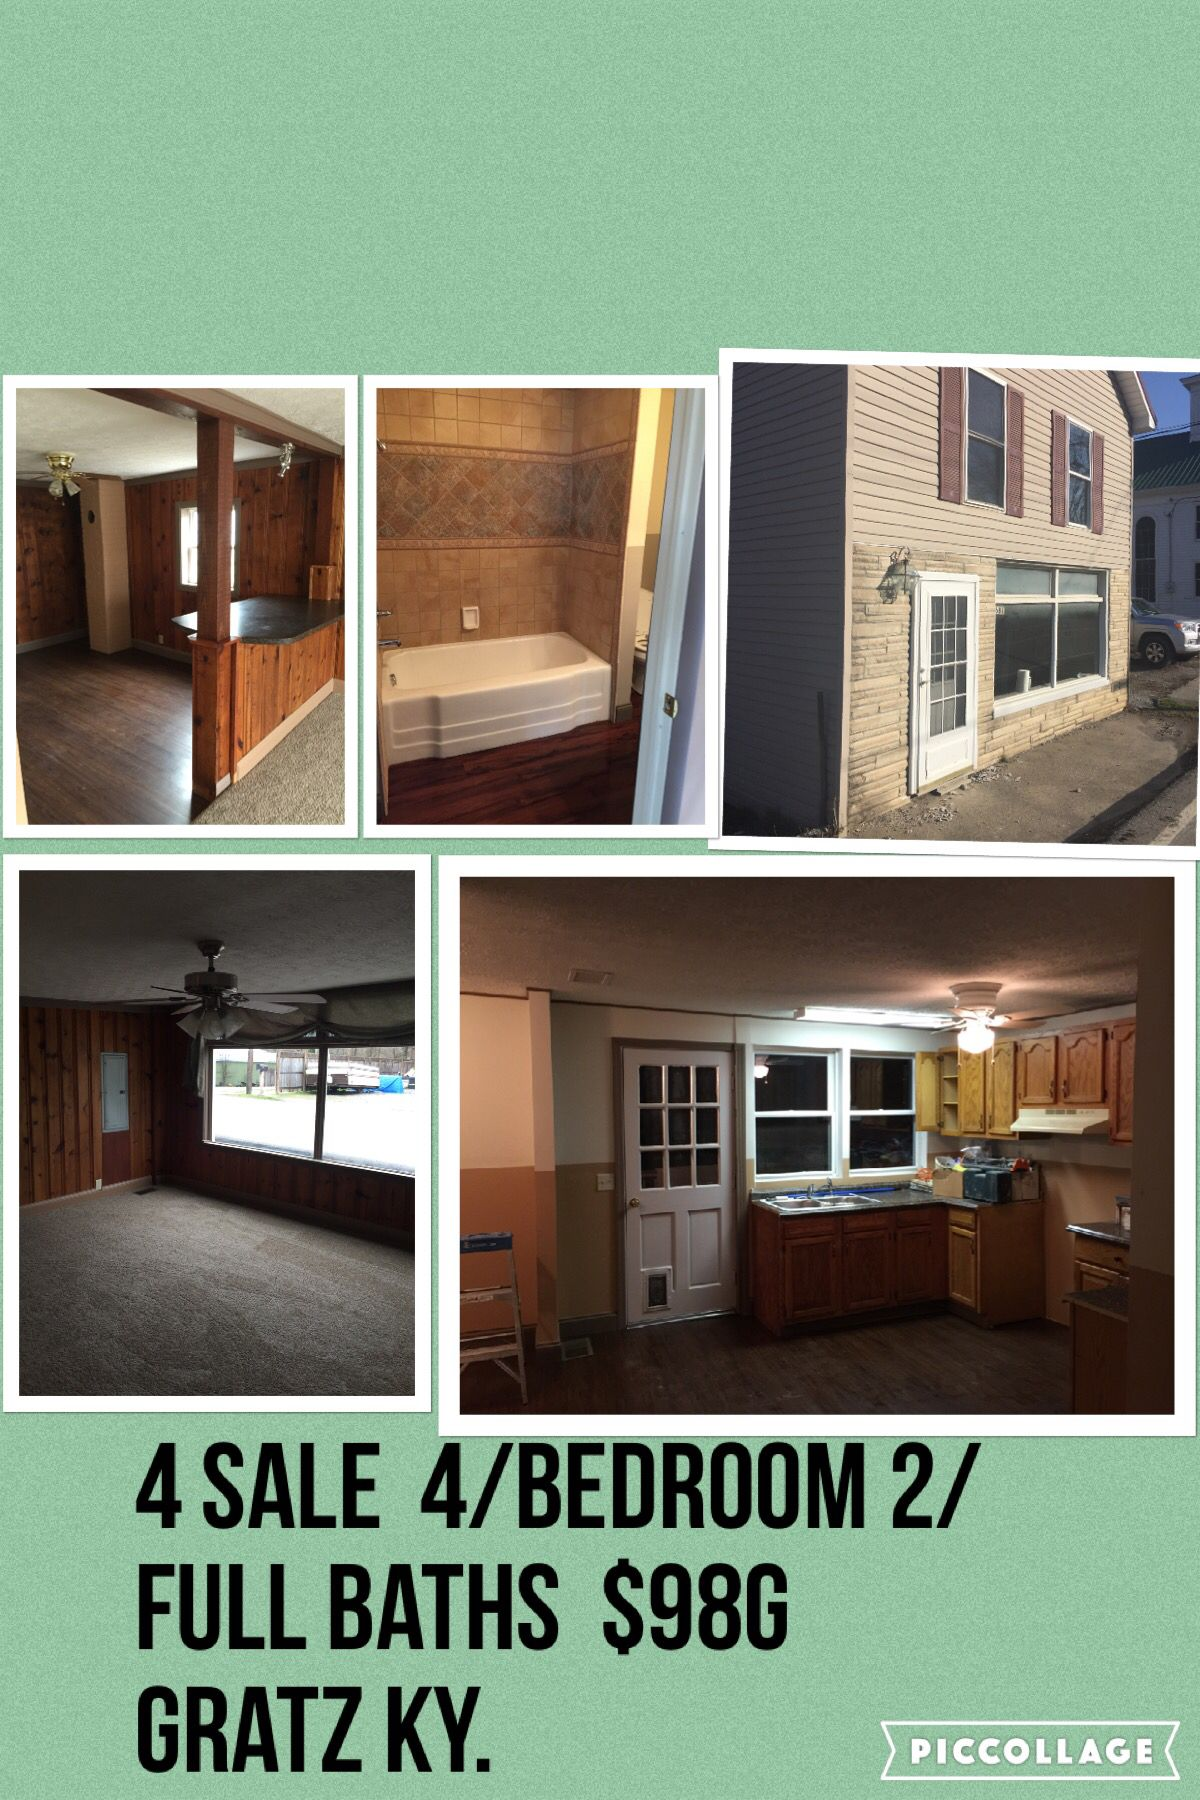 House for sale 4 bedroom 2 full baths. Located in gratz Kentucky . Small Country town. Priced at $98G  Message me to place a bid